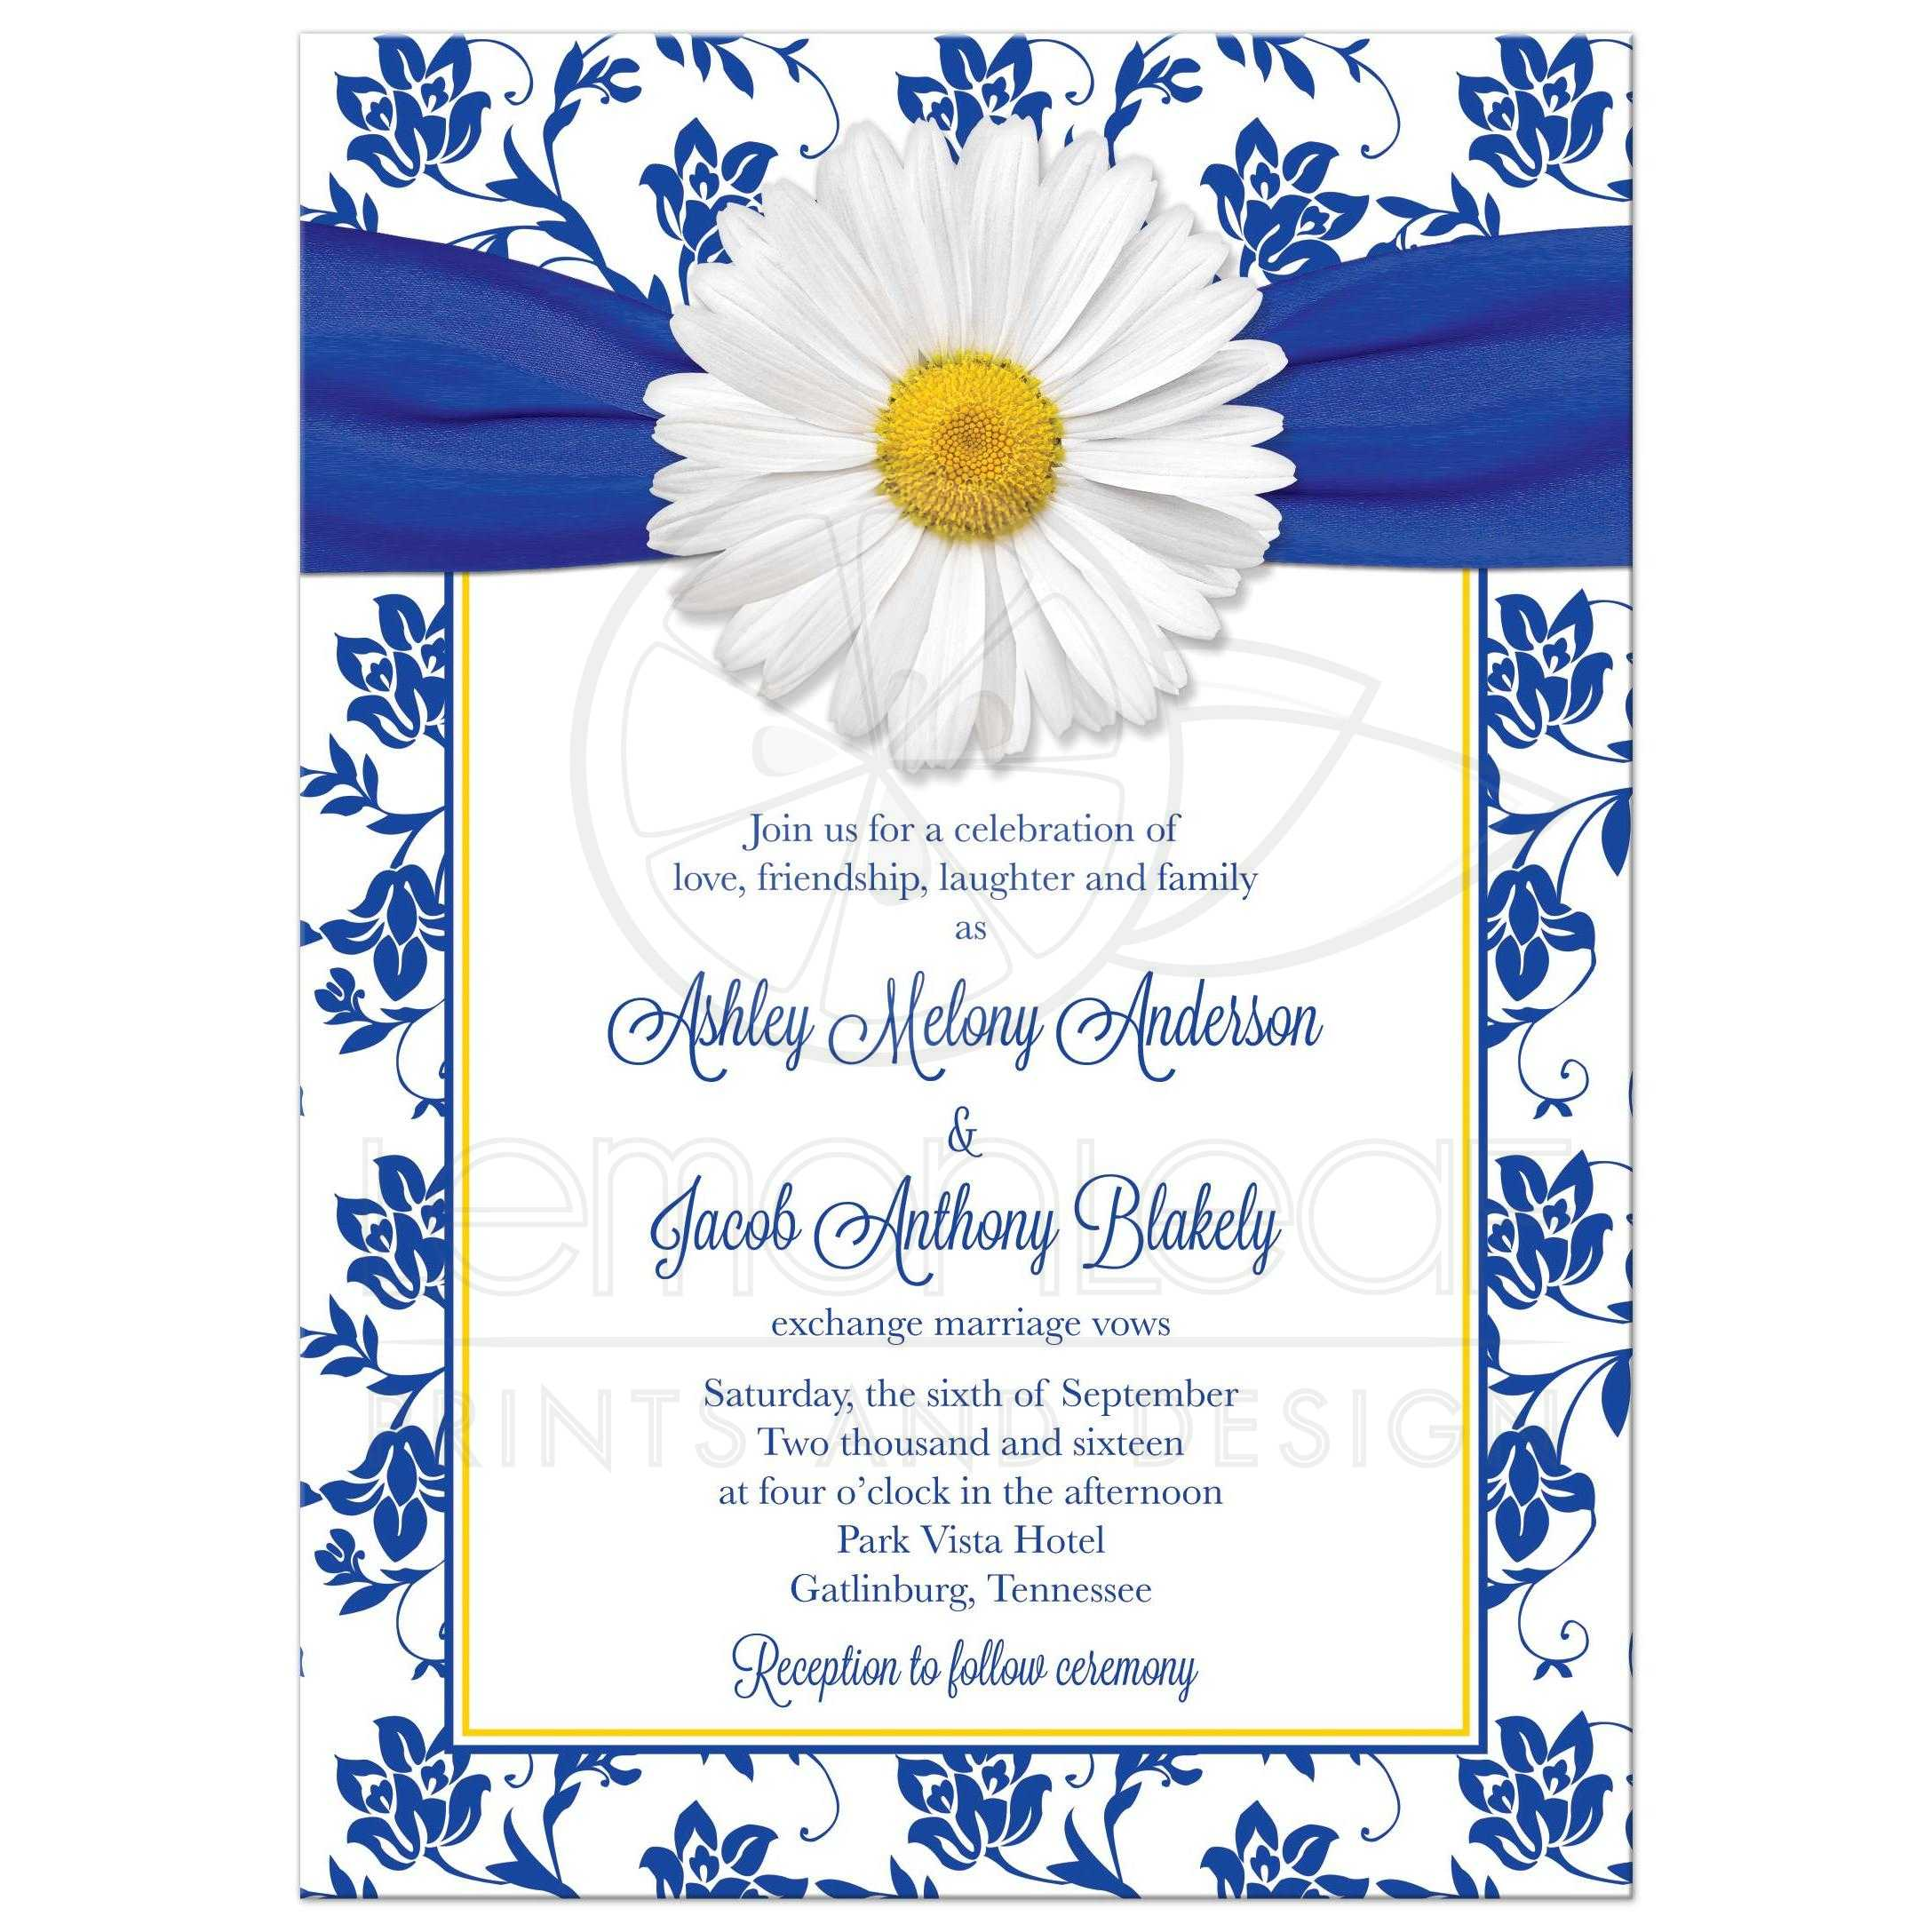 Daisy Wedding Invitation Royal Blue Floral Damask Ribbon